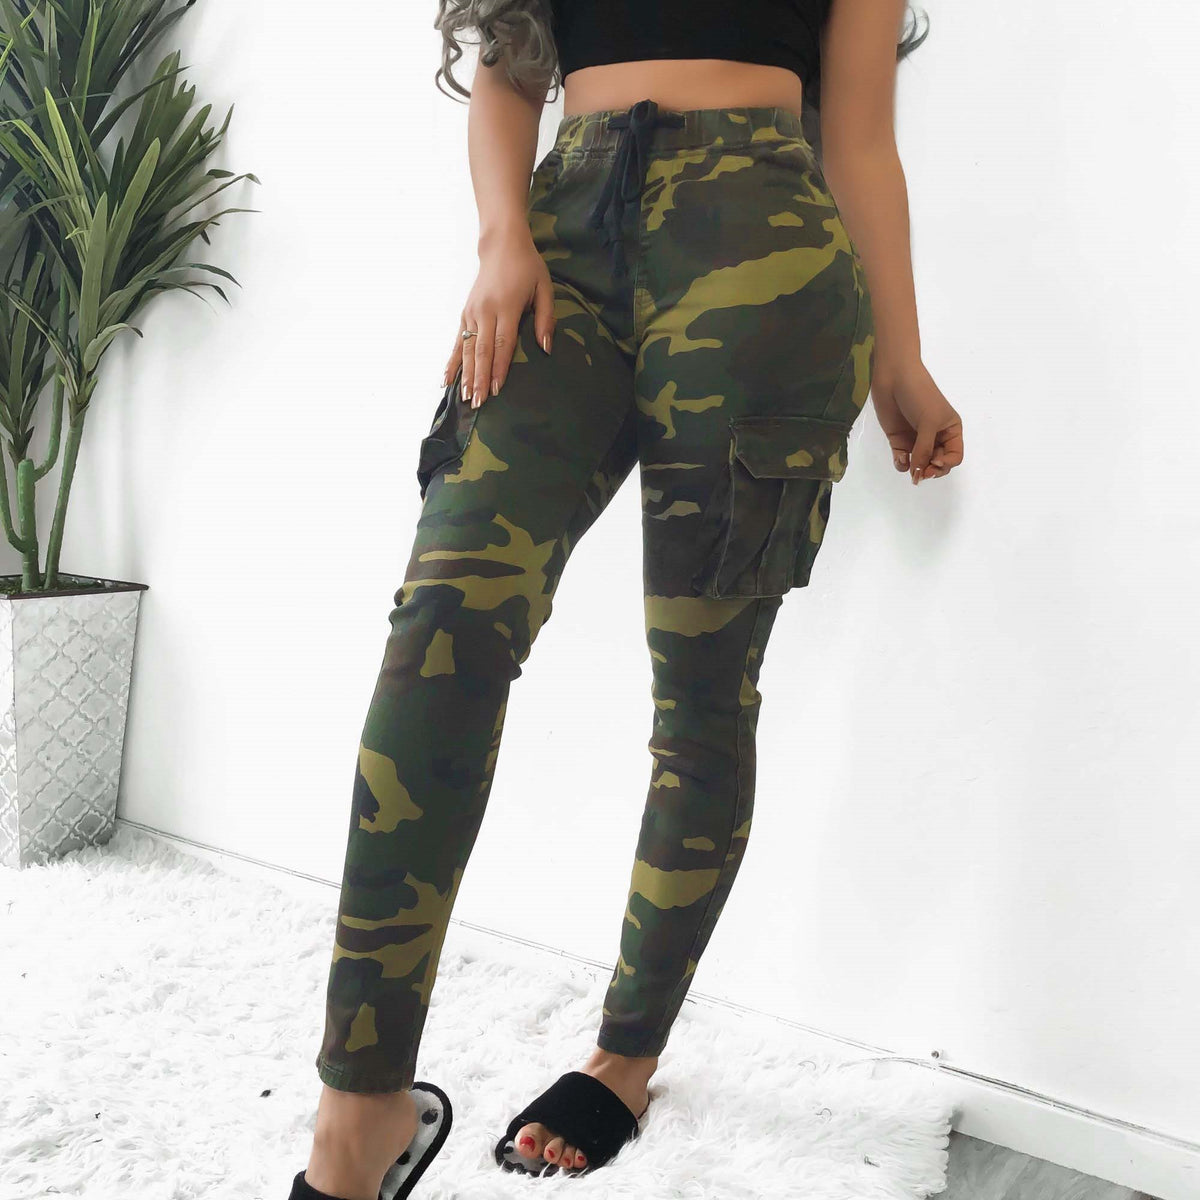 Pockets Skinny Pencil Casual Pants Women Lace up Pantalon Cintura Alta Camouflage Jogers Para Mujer Sexy Long Womens Trousers